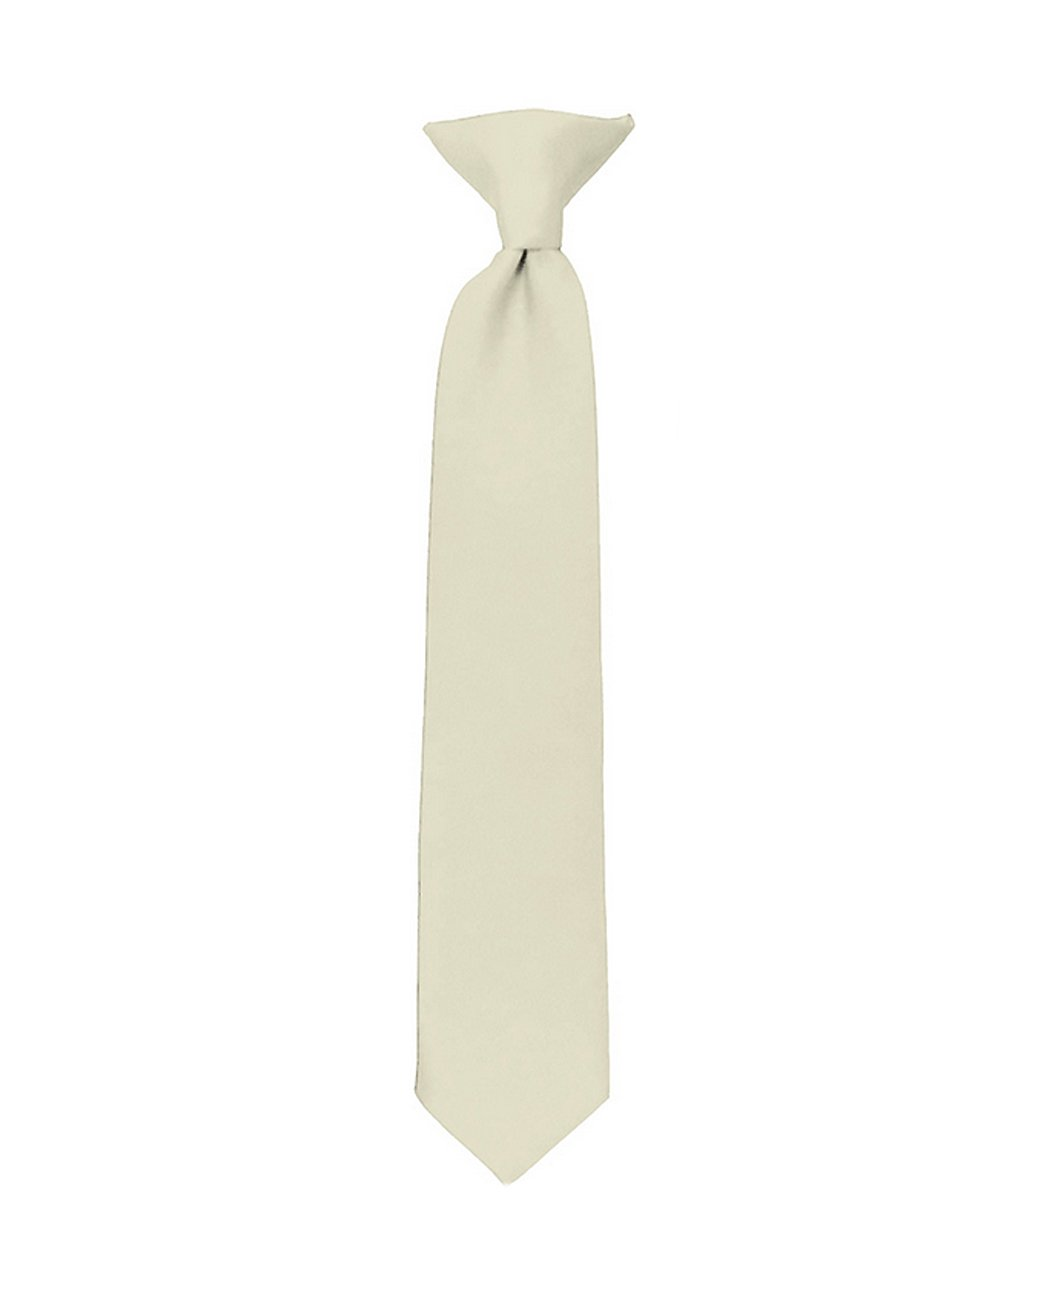 NYfashion101 Boy's Solid Clip on Tie - Golden Yelllow C48-Golden Yellow-8